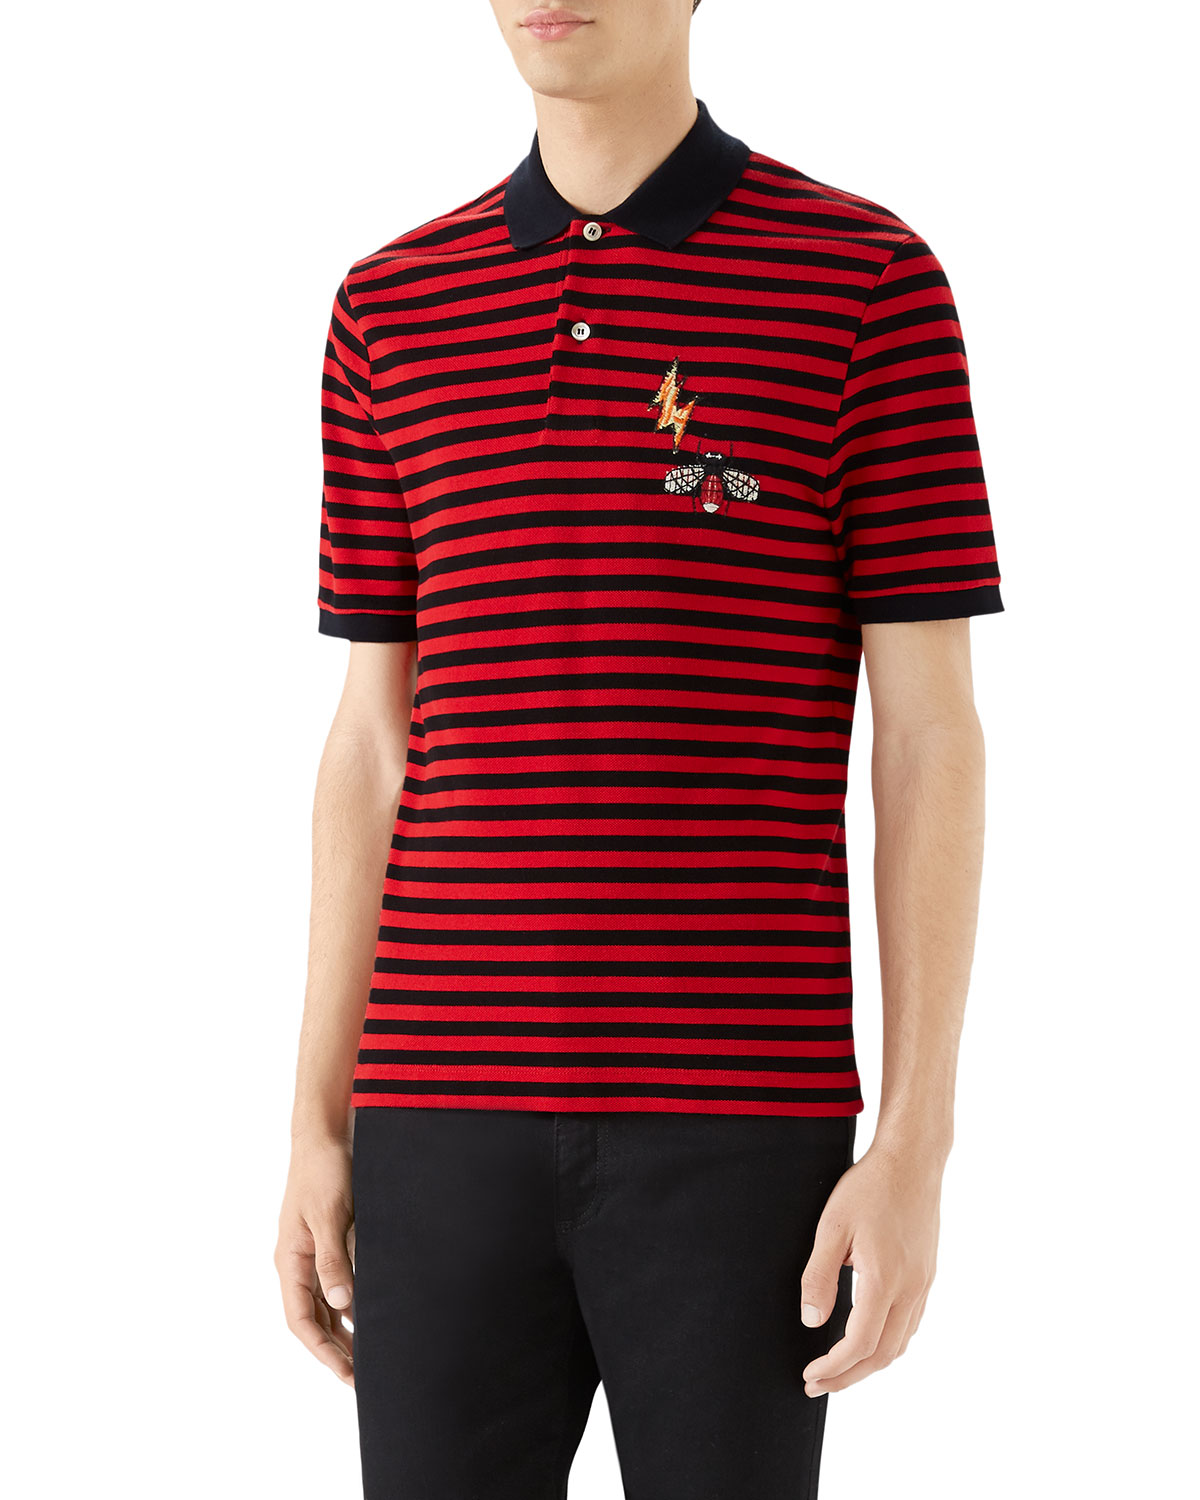 02d7f00f2c3 Gucci Men s Striped Pique Polo Shirt with Patches